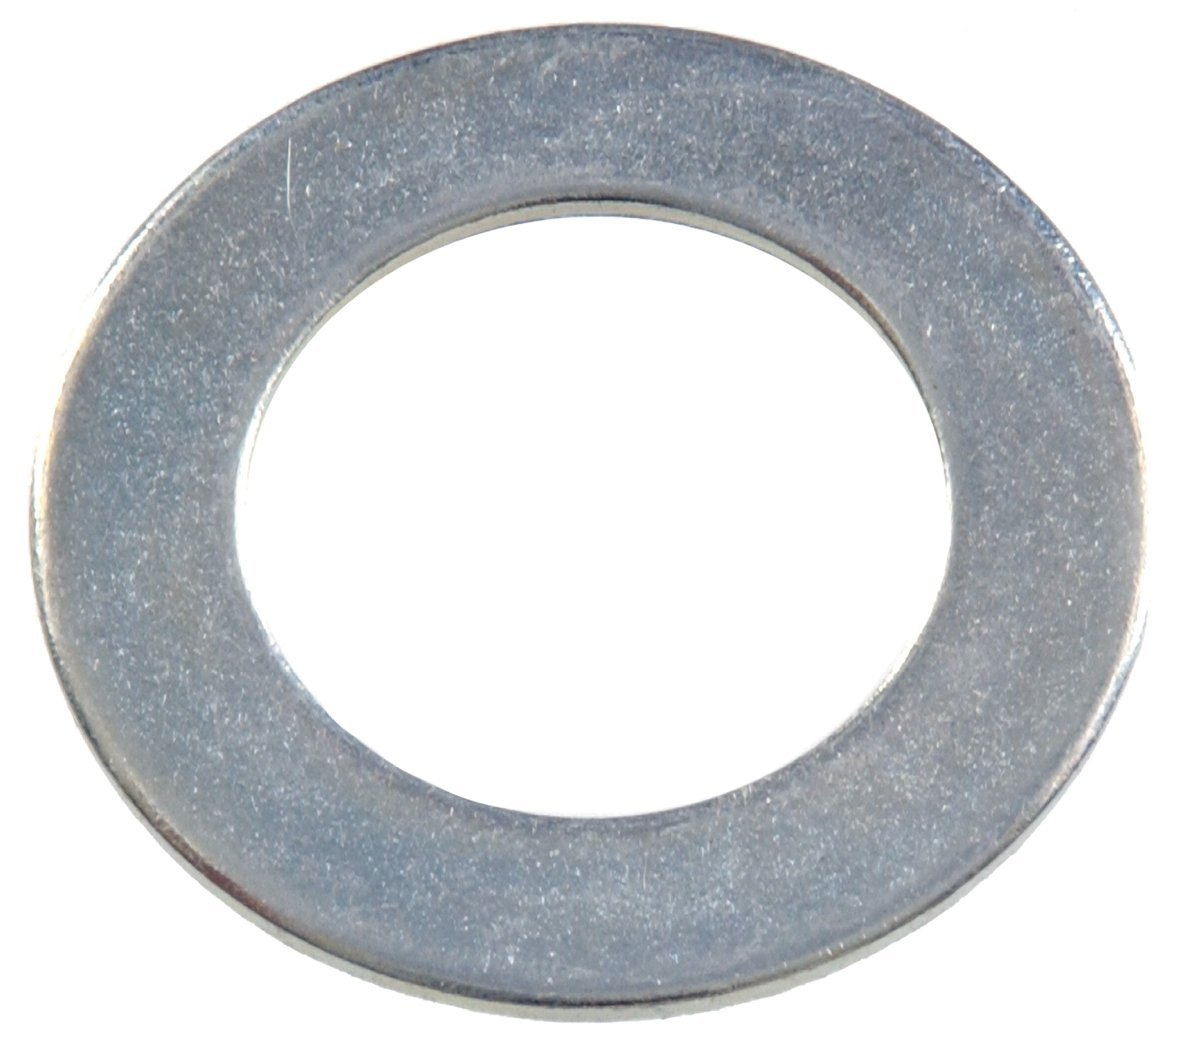 The Hillman Group 45679 1-3/4-Inch x 2-1/2-Inch x 18-Gauge Machine Bushing